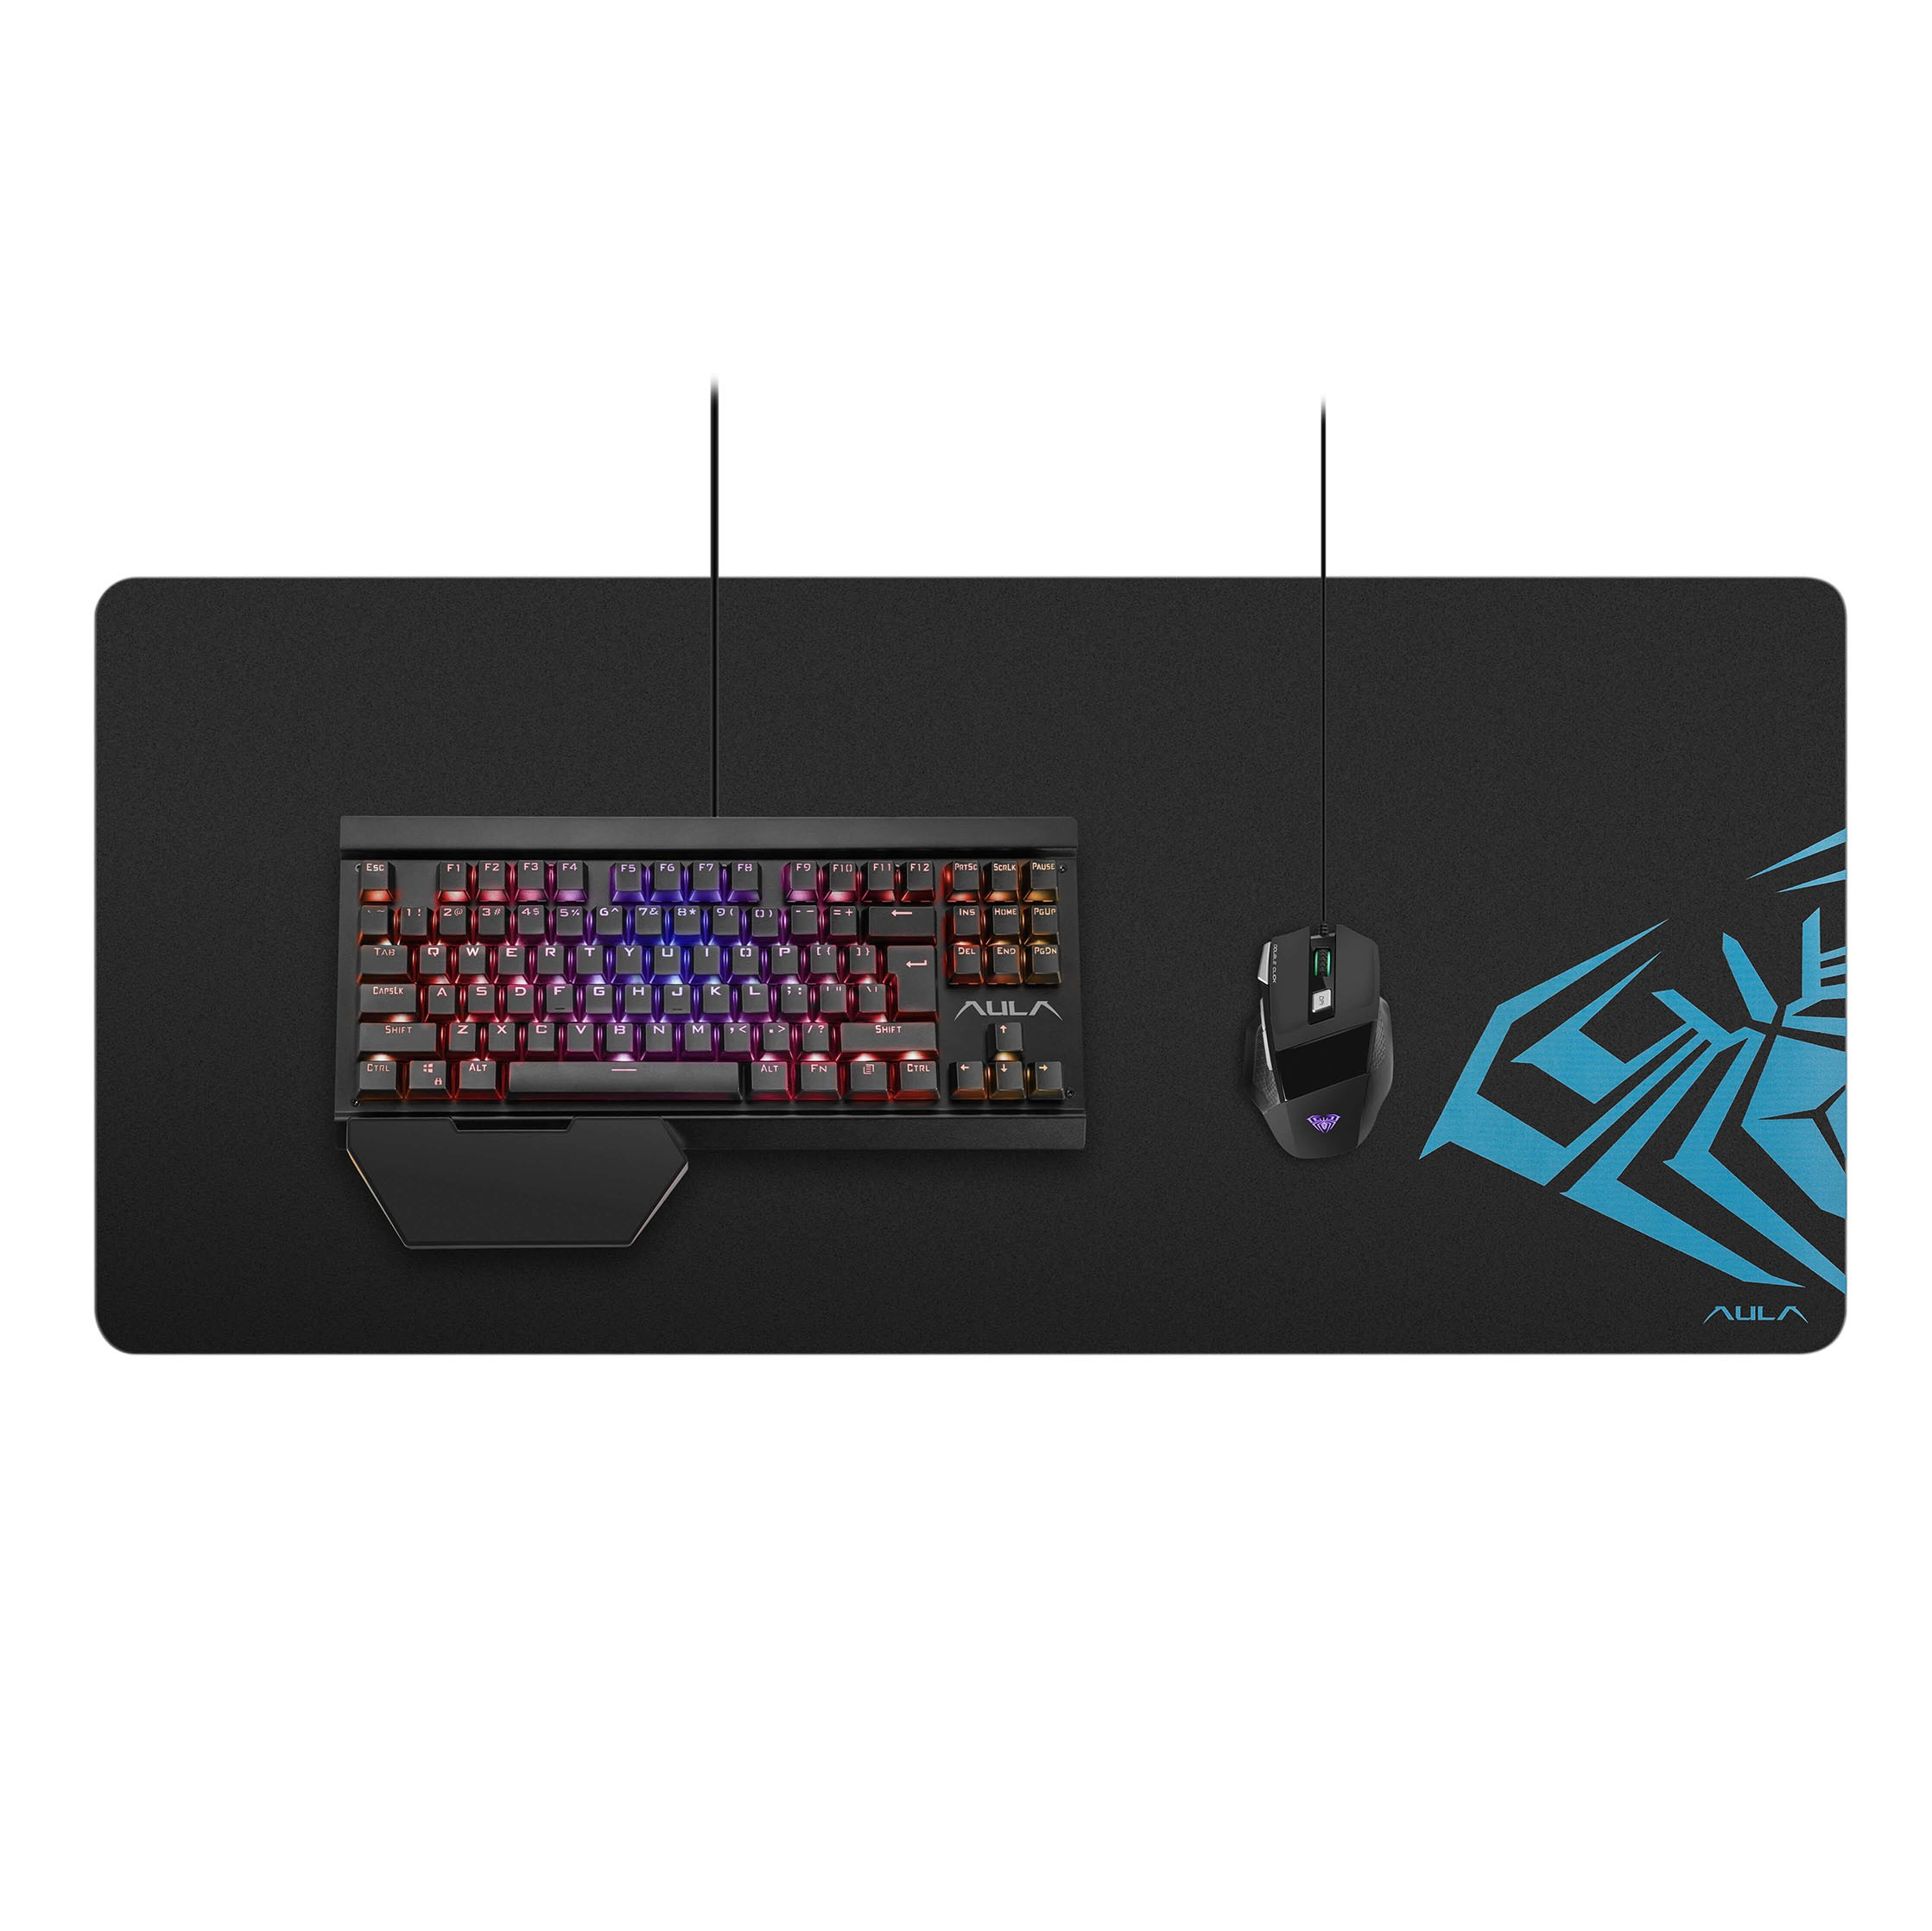 AULA mouse pad XL size 900x400x3mm